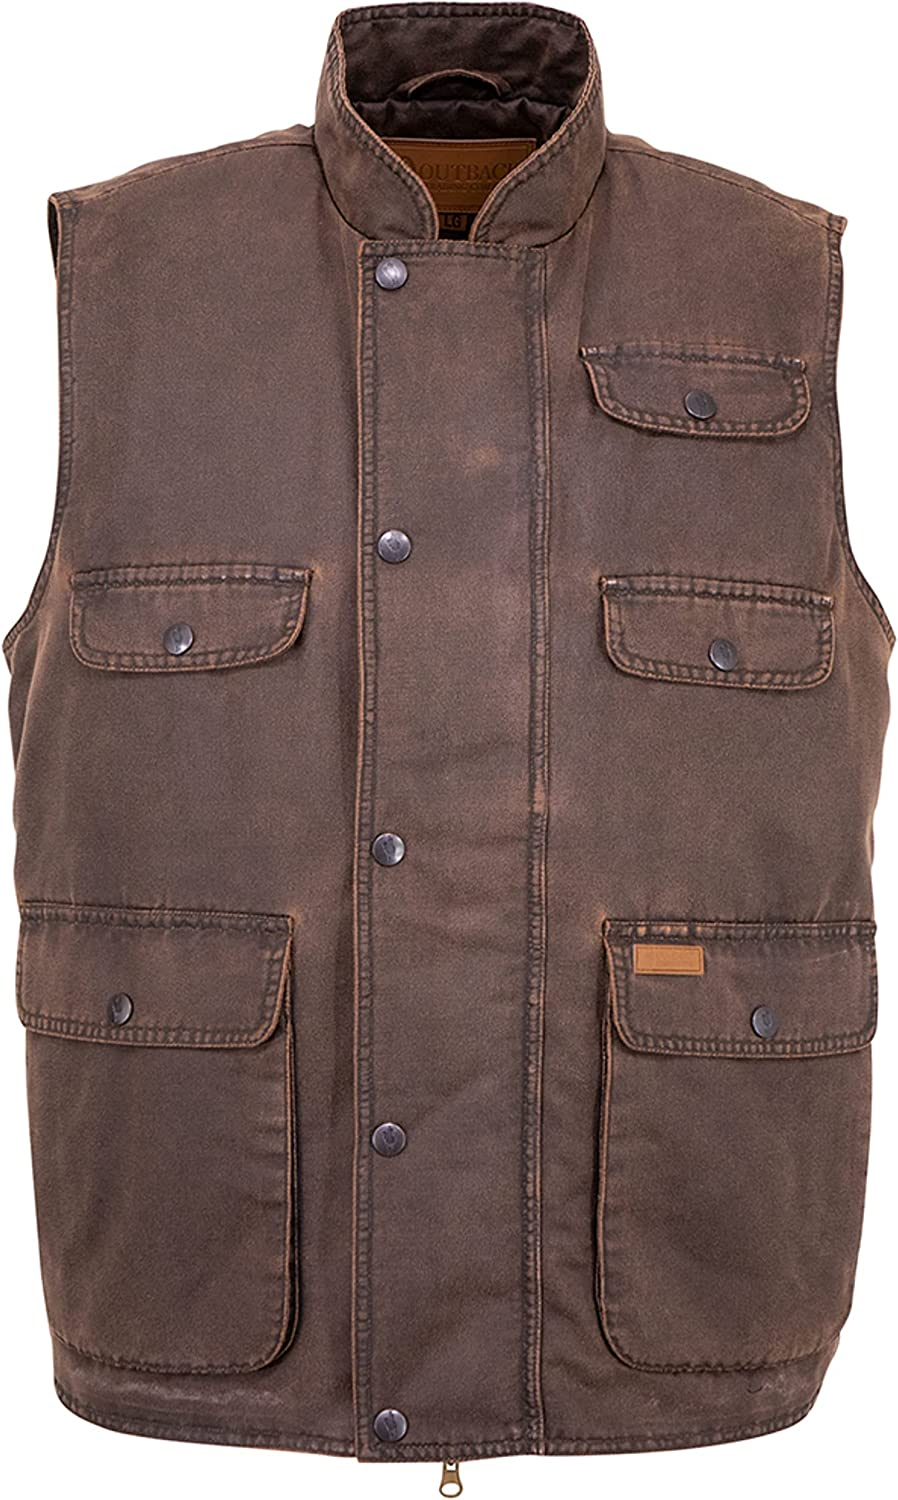 Outback Trading Men's Cotton Outdoor Casual Western Cobar Vest 29742